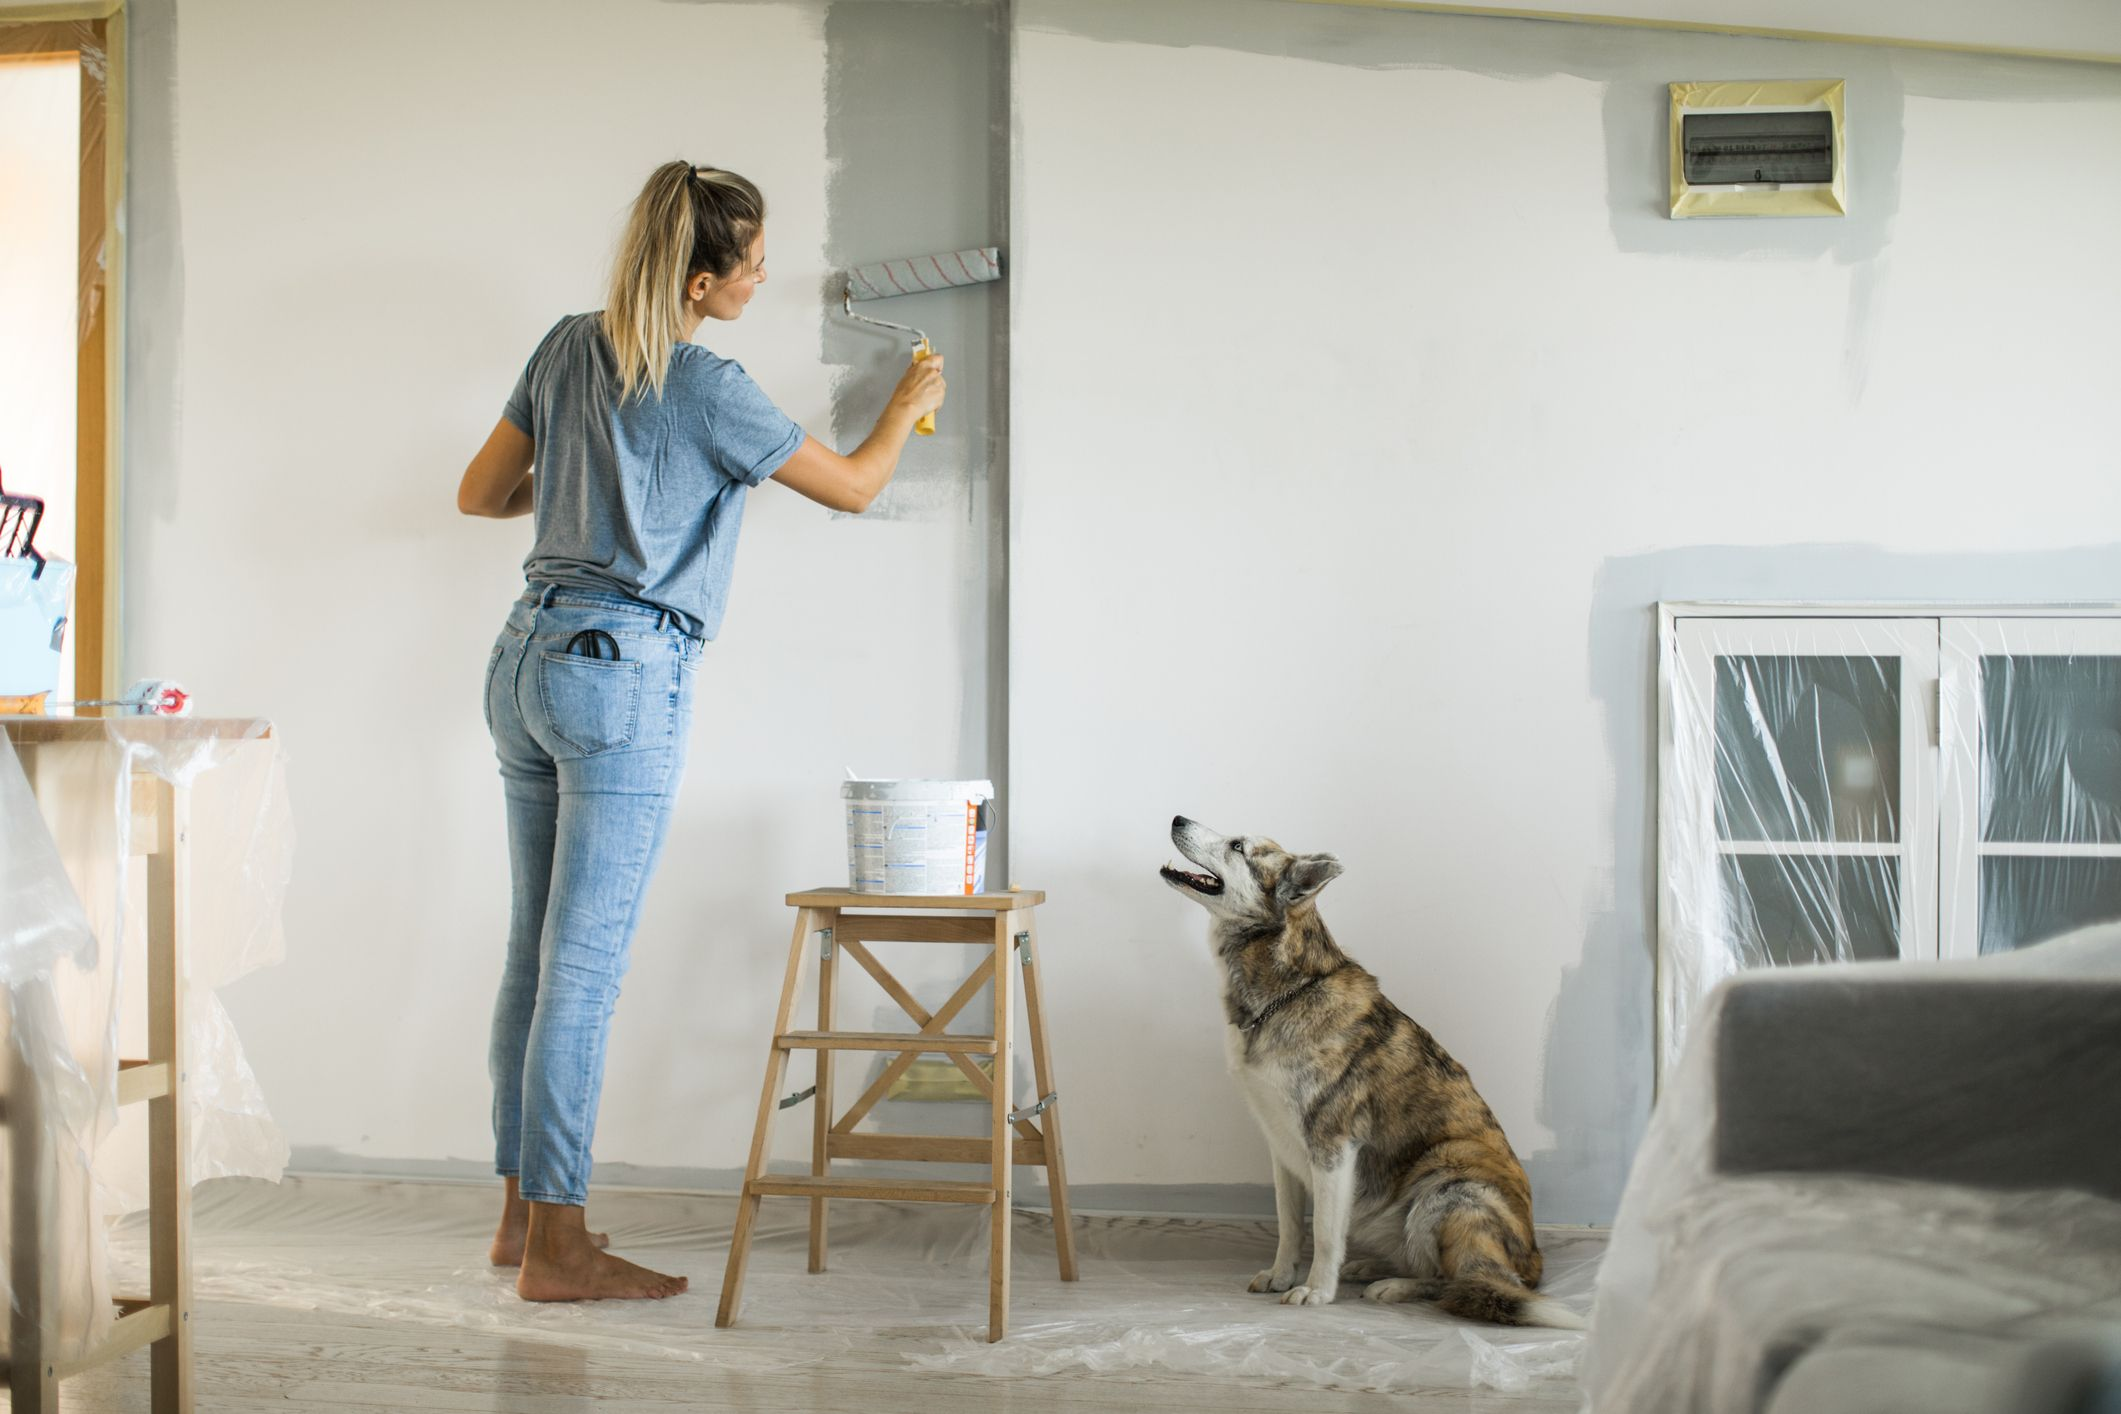 How to Get Rid of Paint Smells - Eliminate Fumes After Painting